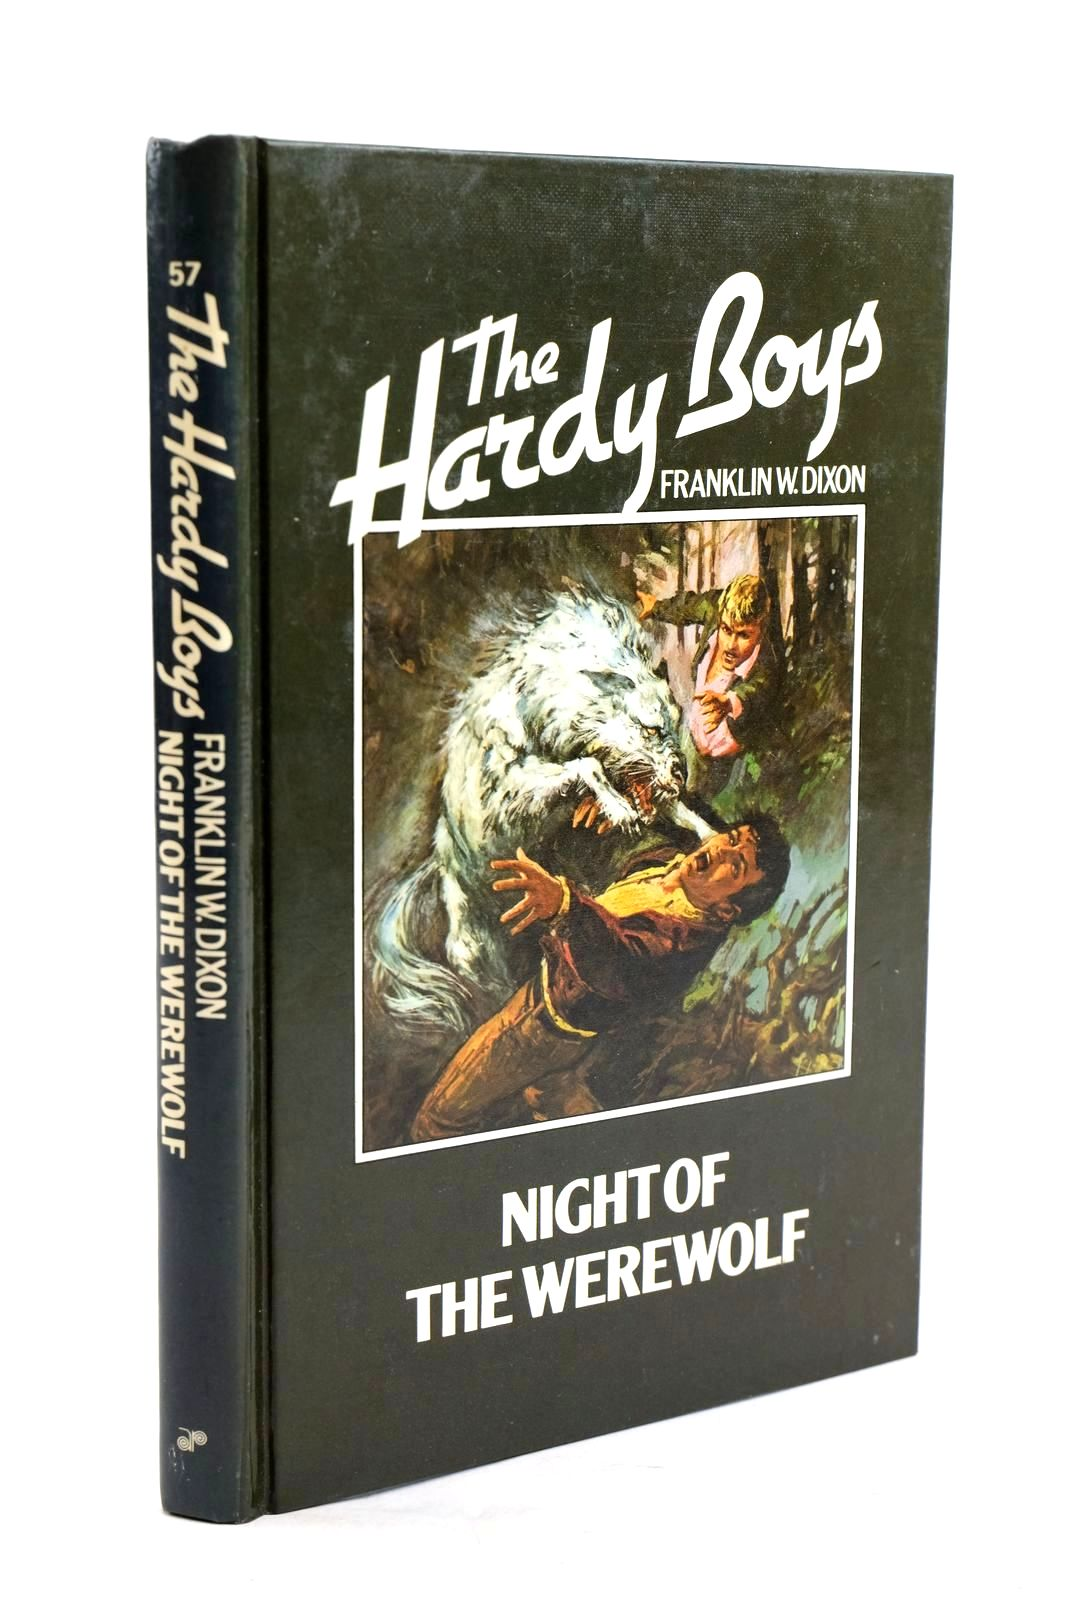 Photo of NIGHT OF THE WEREWOLF written by Dixon, Franklin W. illustrated by Morrill, Leslie published by Angus & Robertson Publishers (STOCK CODE: 1319544)  for sale by Stella & Rose's Books